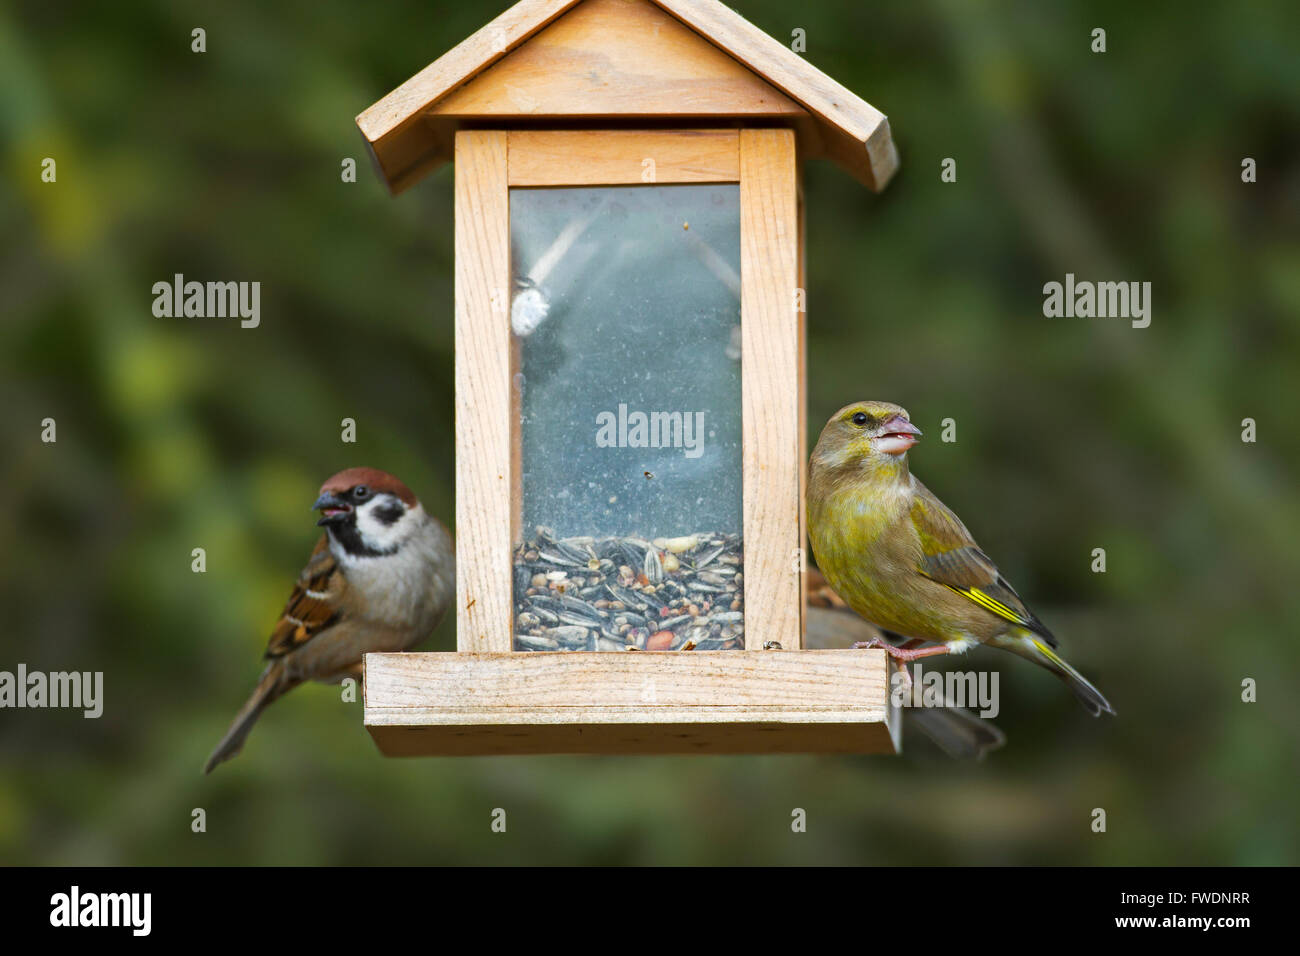 European greenfinch (Chloris chloris / Carduelis chloris) and tree sparrows (Passer montanus) feeding at garden - Stock Image